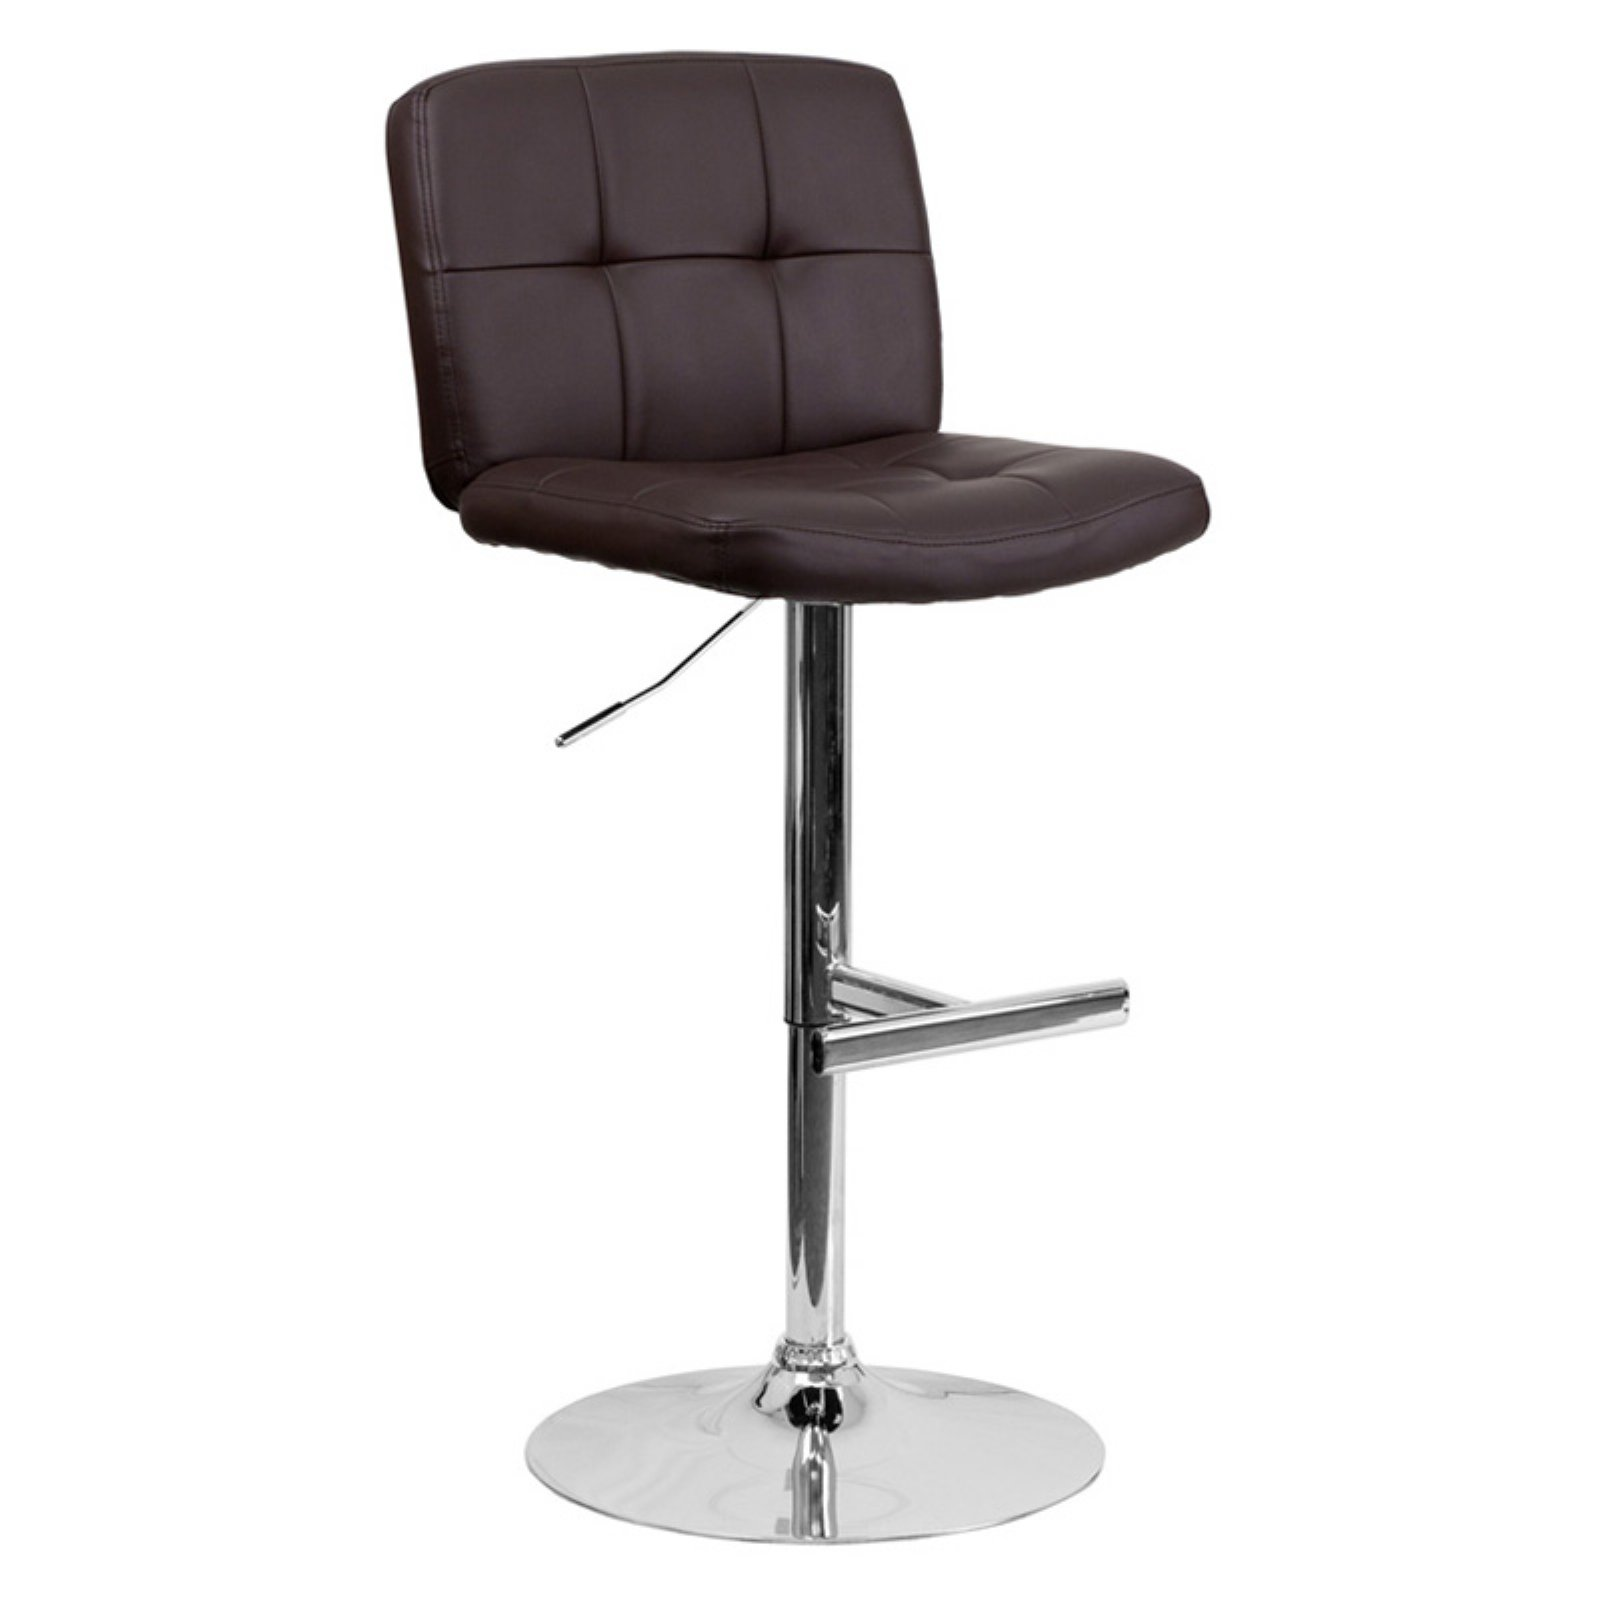 Contemporary Vinyl Adjustable Height Barstool With Wide